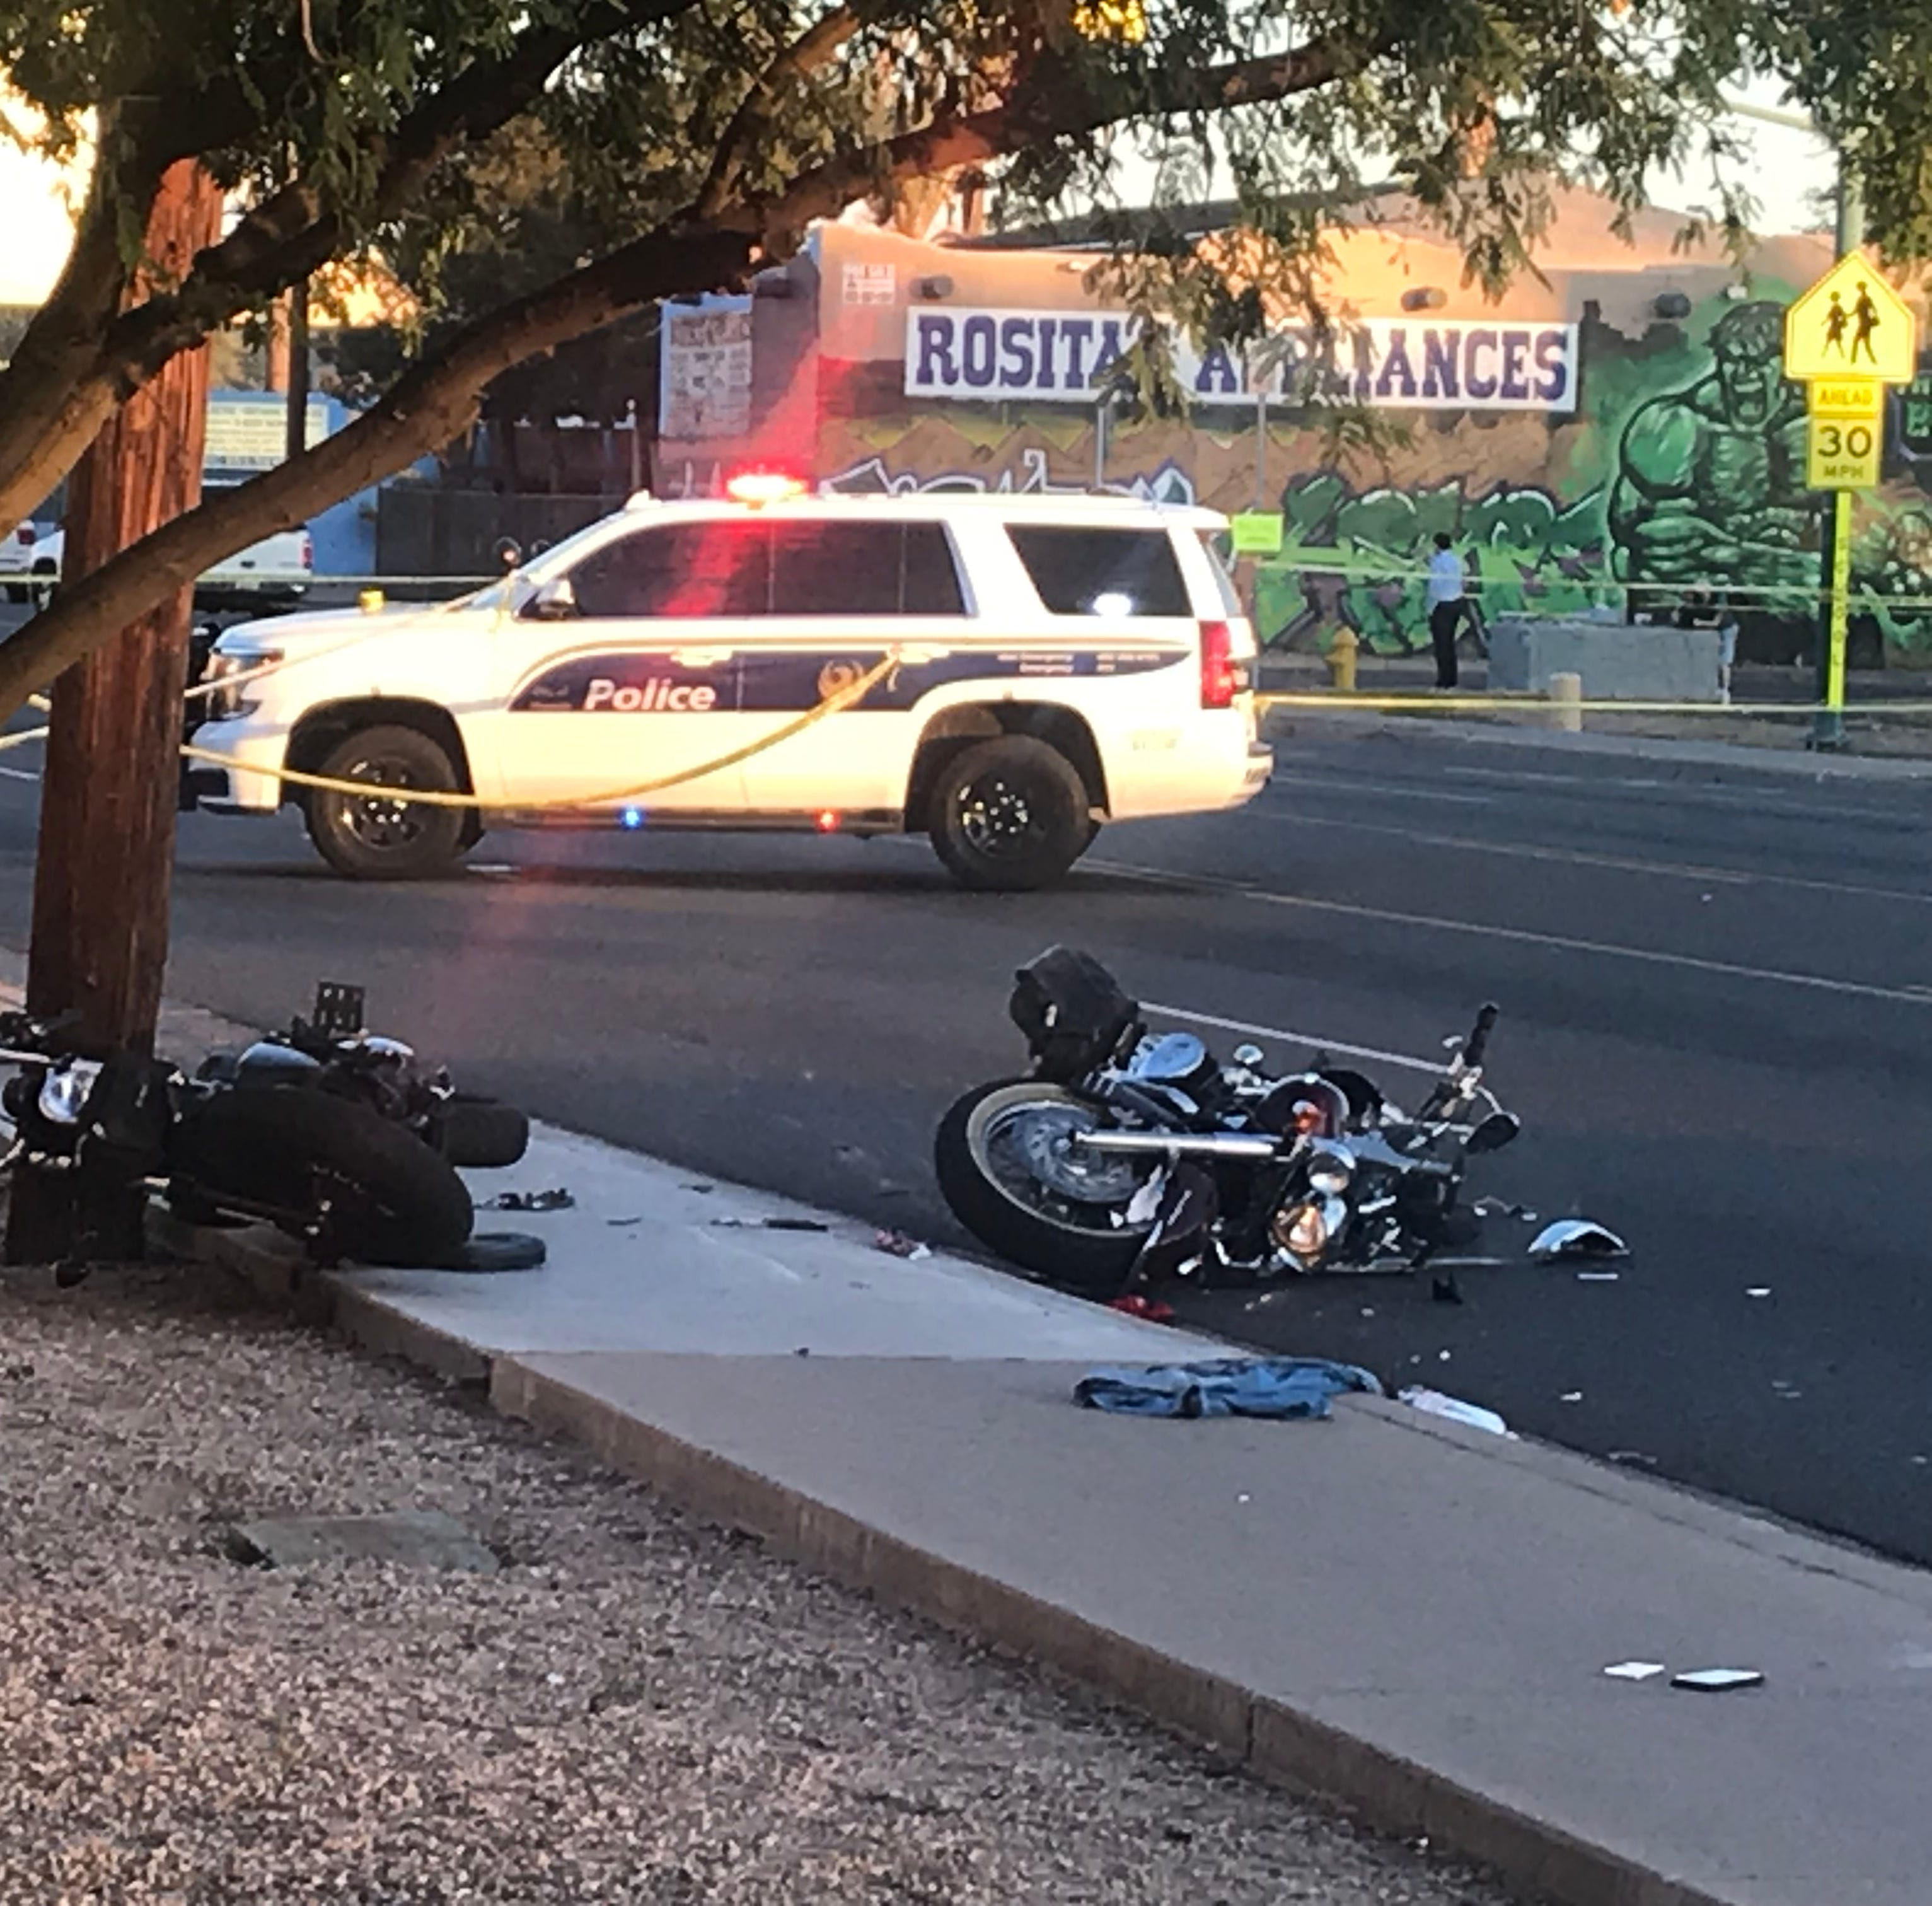 Phoenix police seek driver who struck 2 motorcyclists, leaving them in critical condition